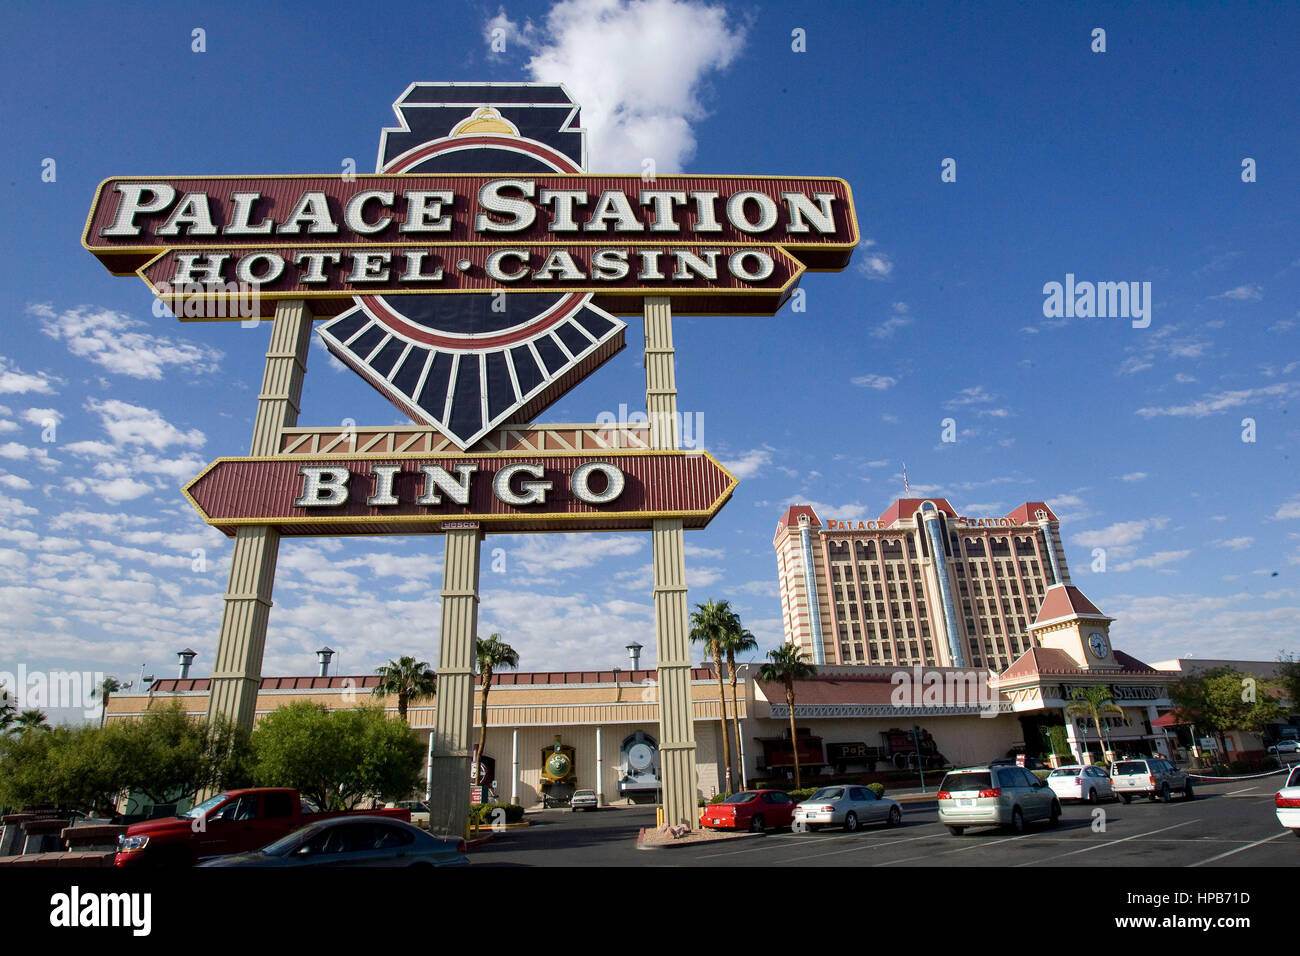 palace station hotel & casino